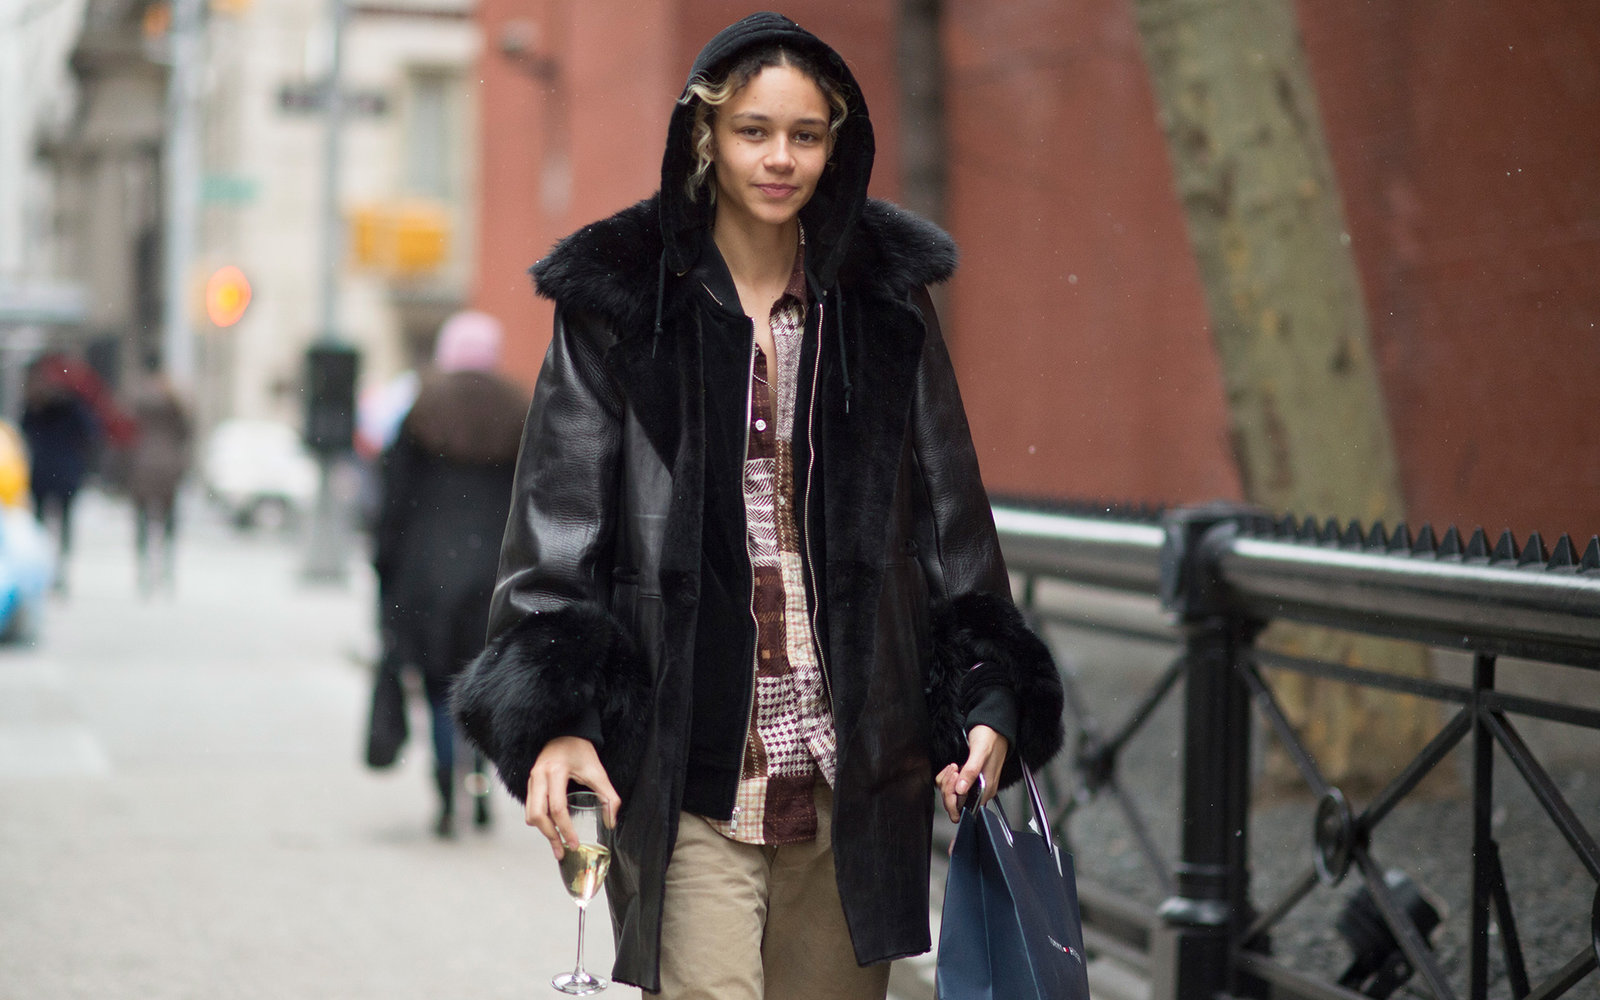 NEW YORK, NY - FEBRUARY 15:  Binx Walton is seen wearing a leather jacket  in the streets of Manhattan after the Tommy Hilfiger show  during New York Fashion Week: Women's Fall/Winter 2016 on February 15, 2016 in New York City.  (Photo by Timur Emek/Getty